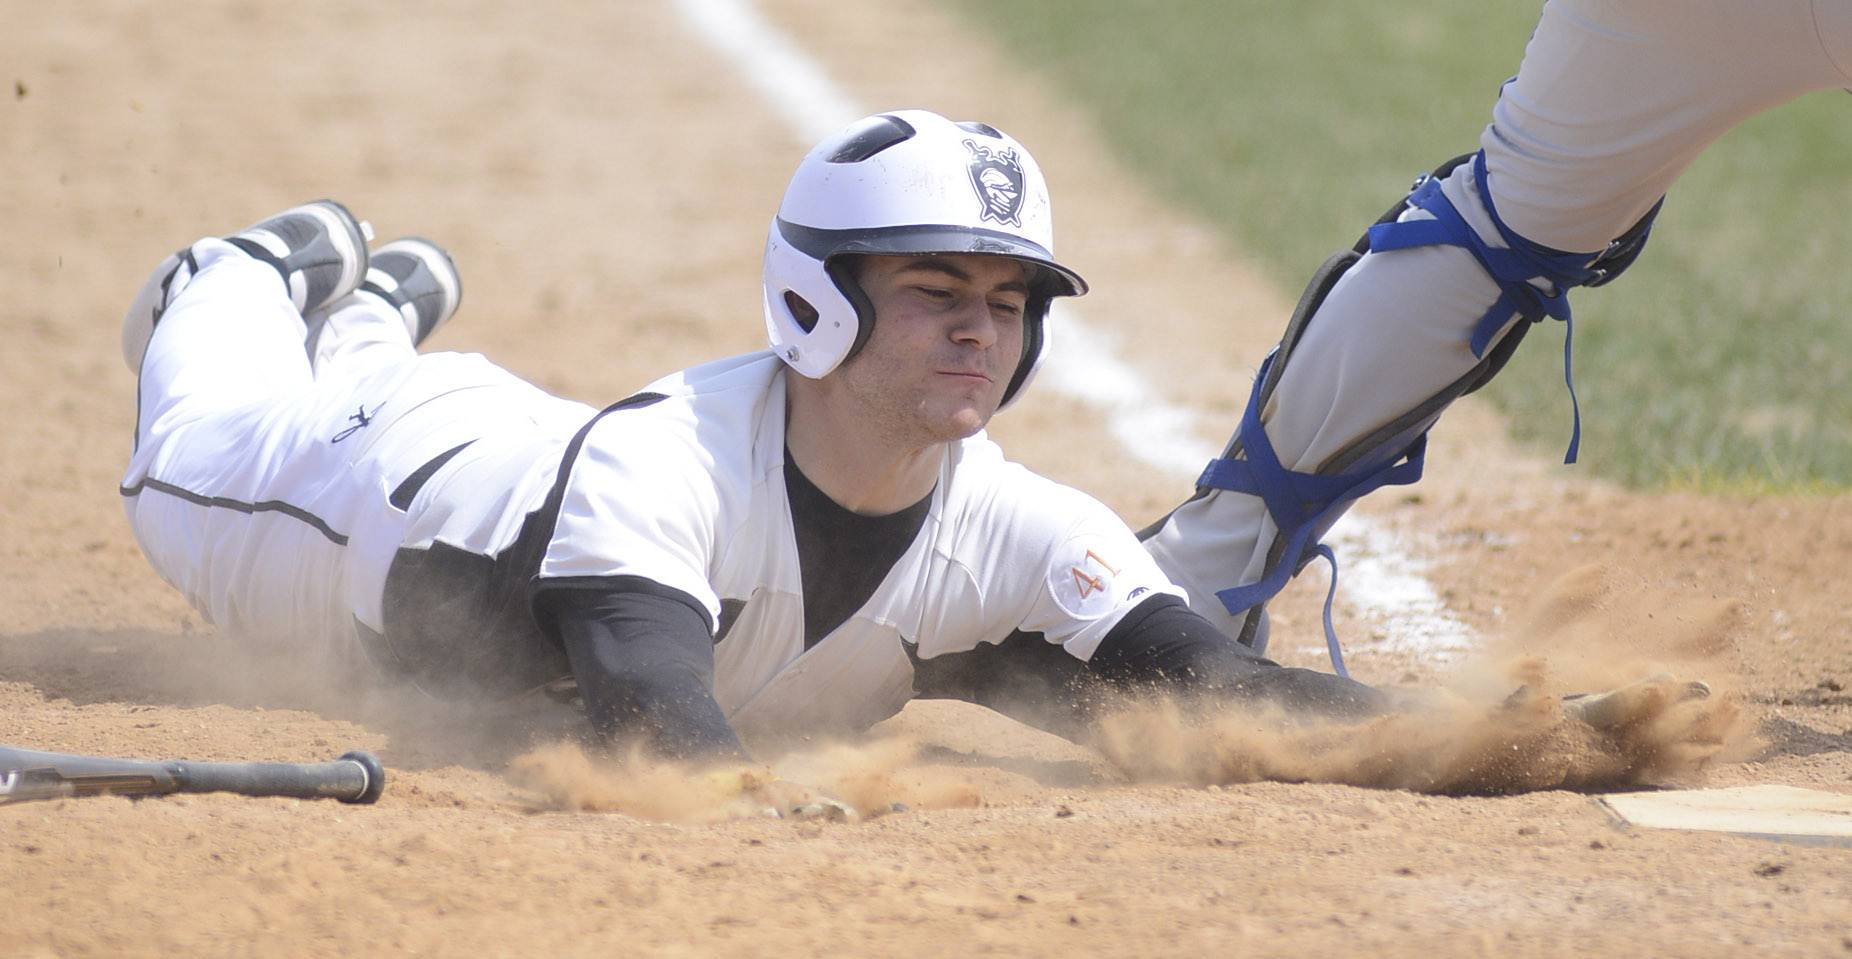 Kaneland's Joe Panico slides into home plate to break the 6-6 tie vs. Geneva in the ninth inning on Saturday, April 19.